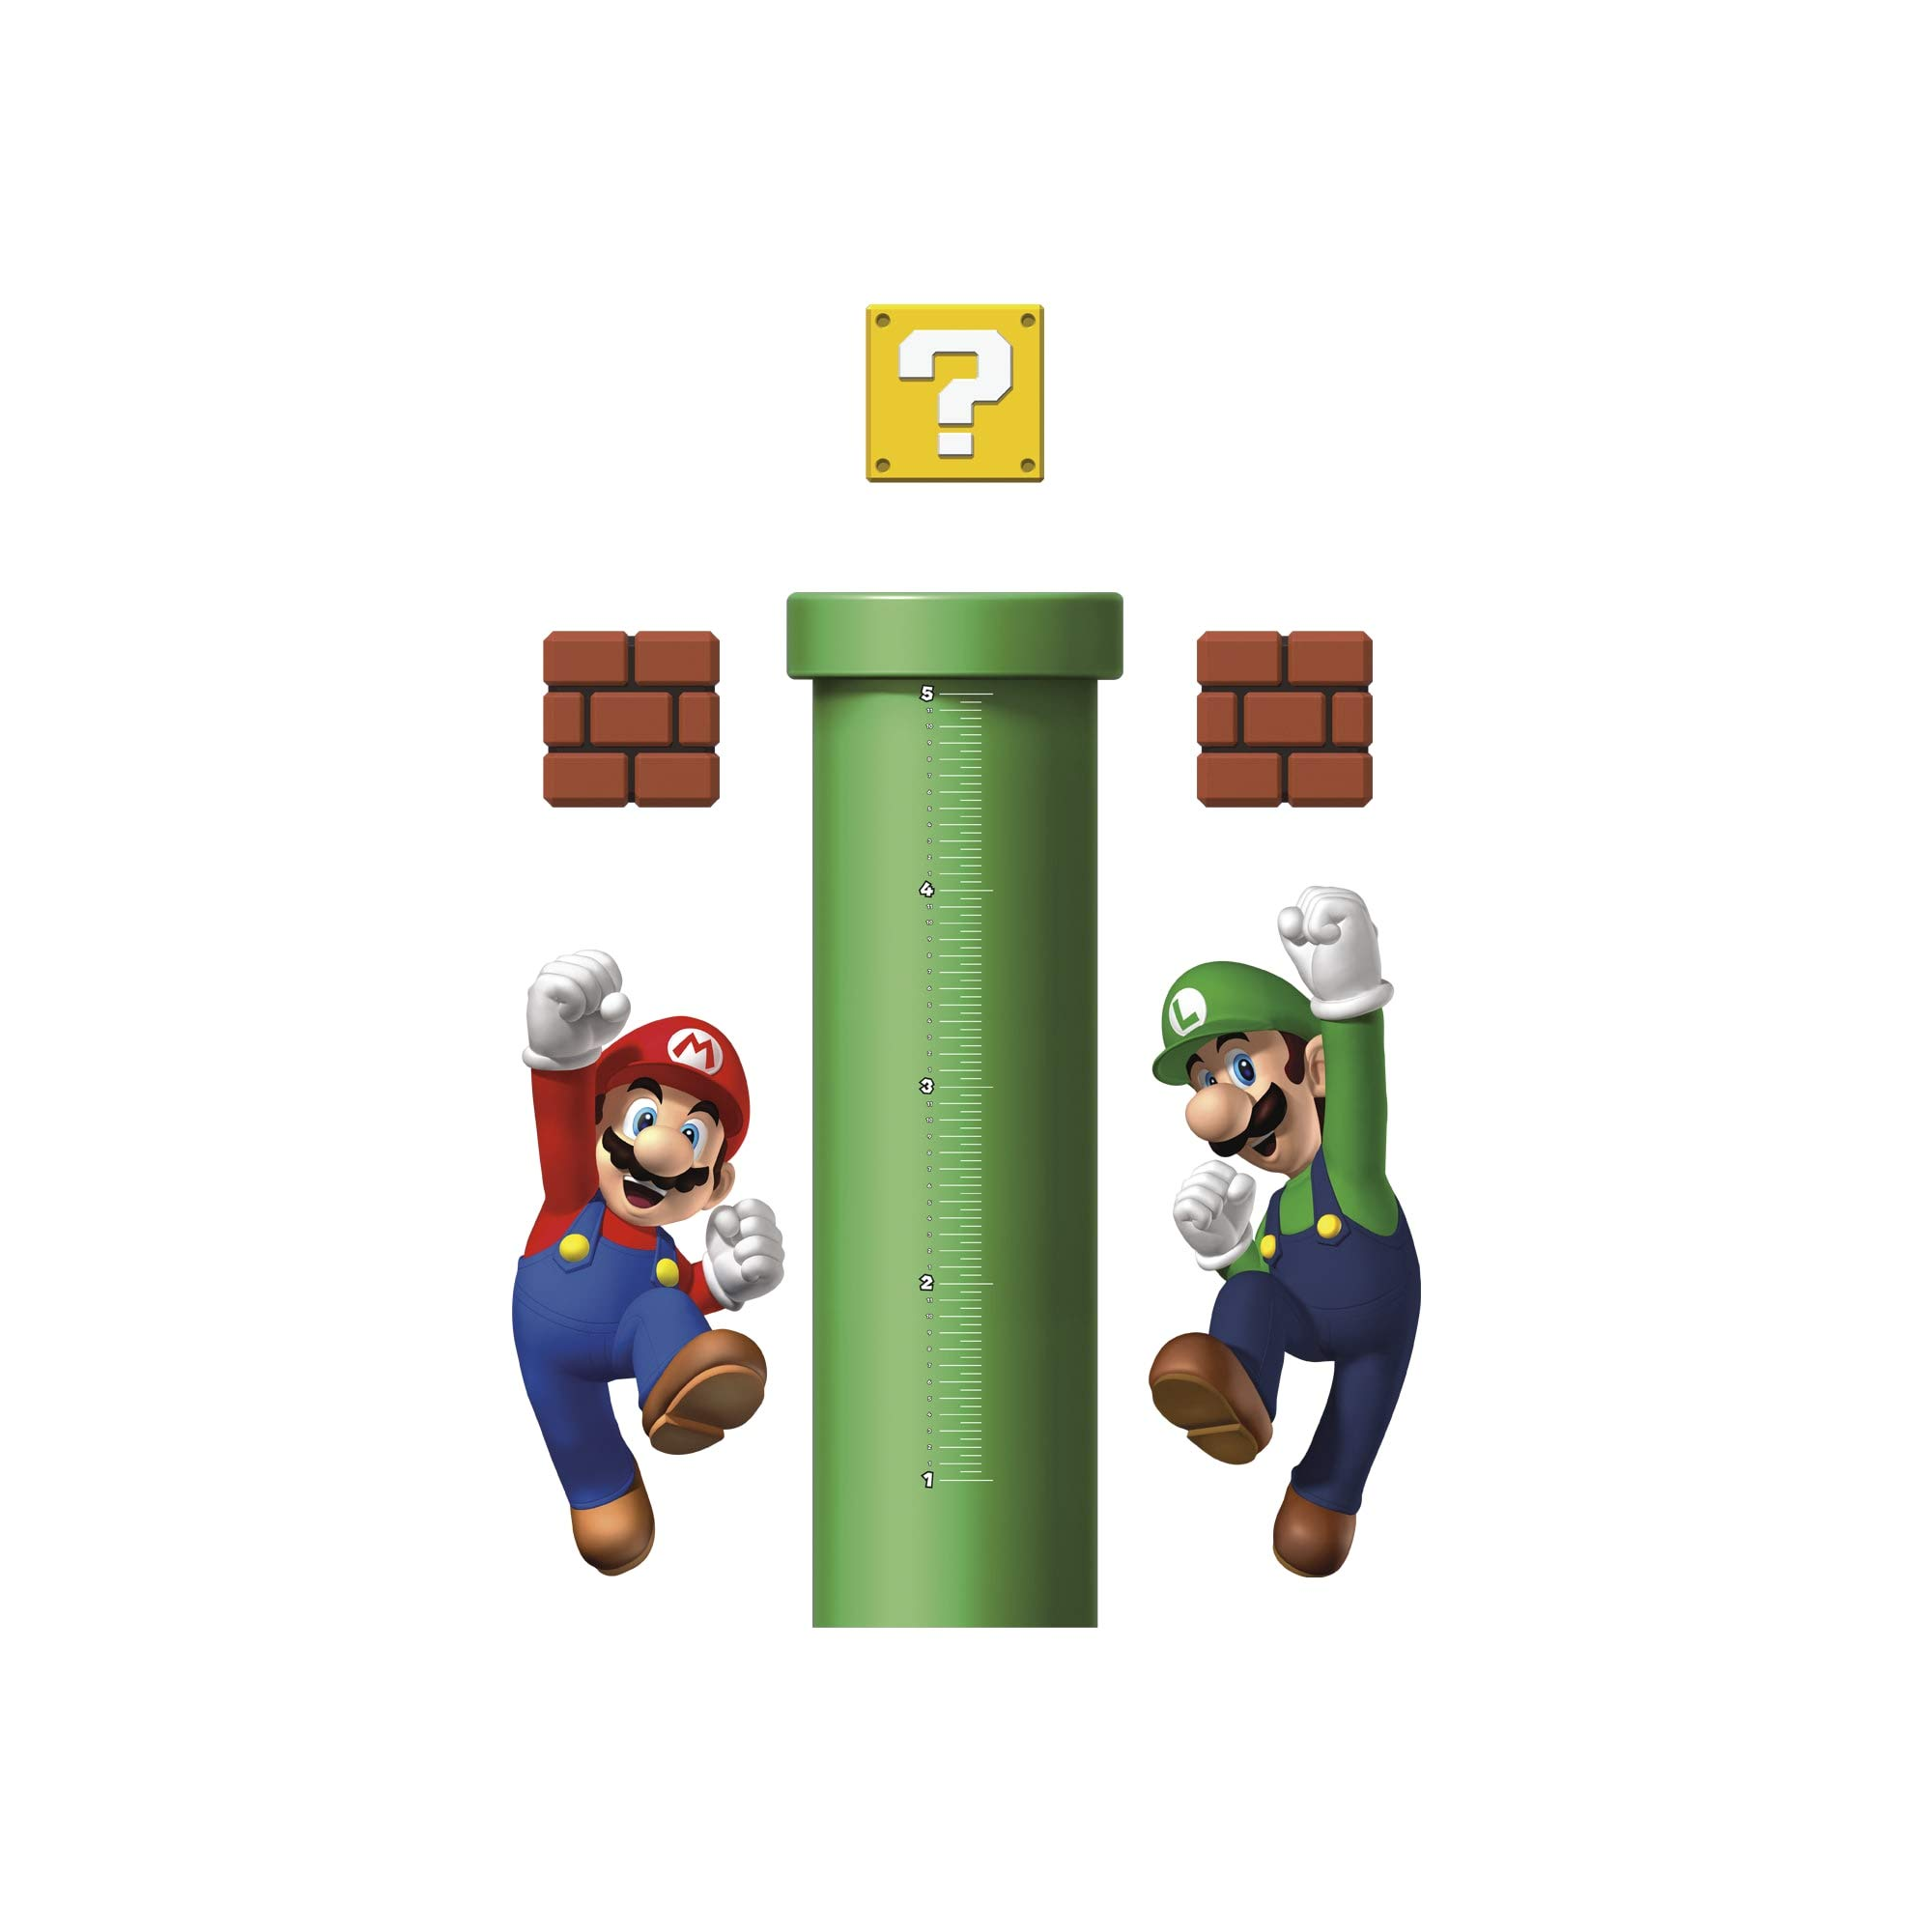 FATHEAD Super Mario: Growth Chart - Large Officially Licensed Nintendo Removable Wall Decals Multicolor